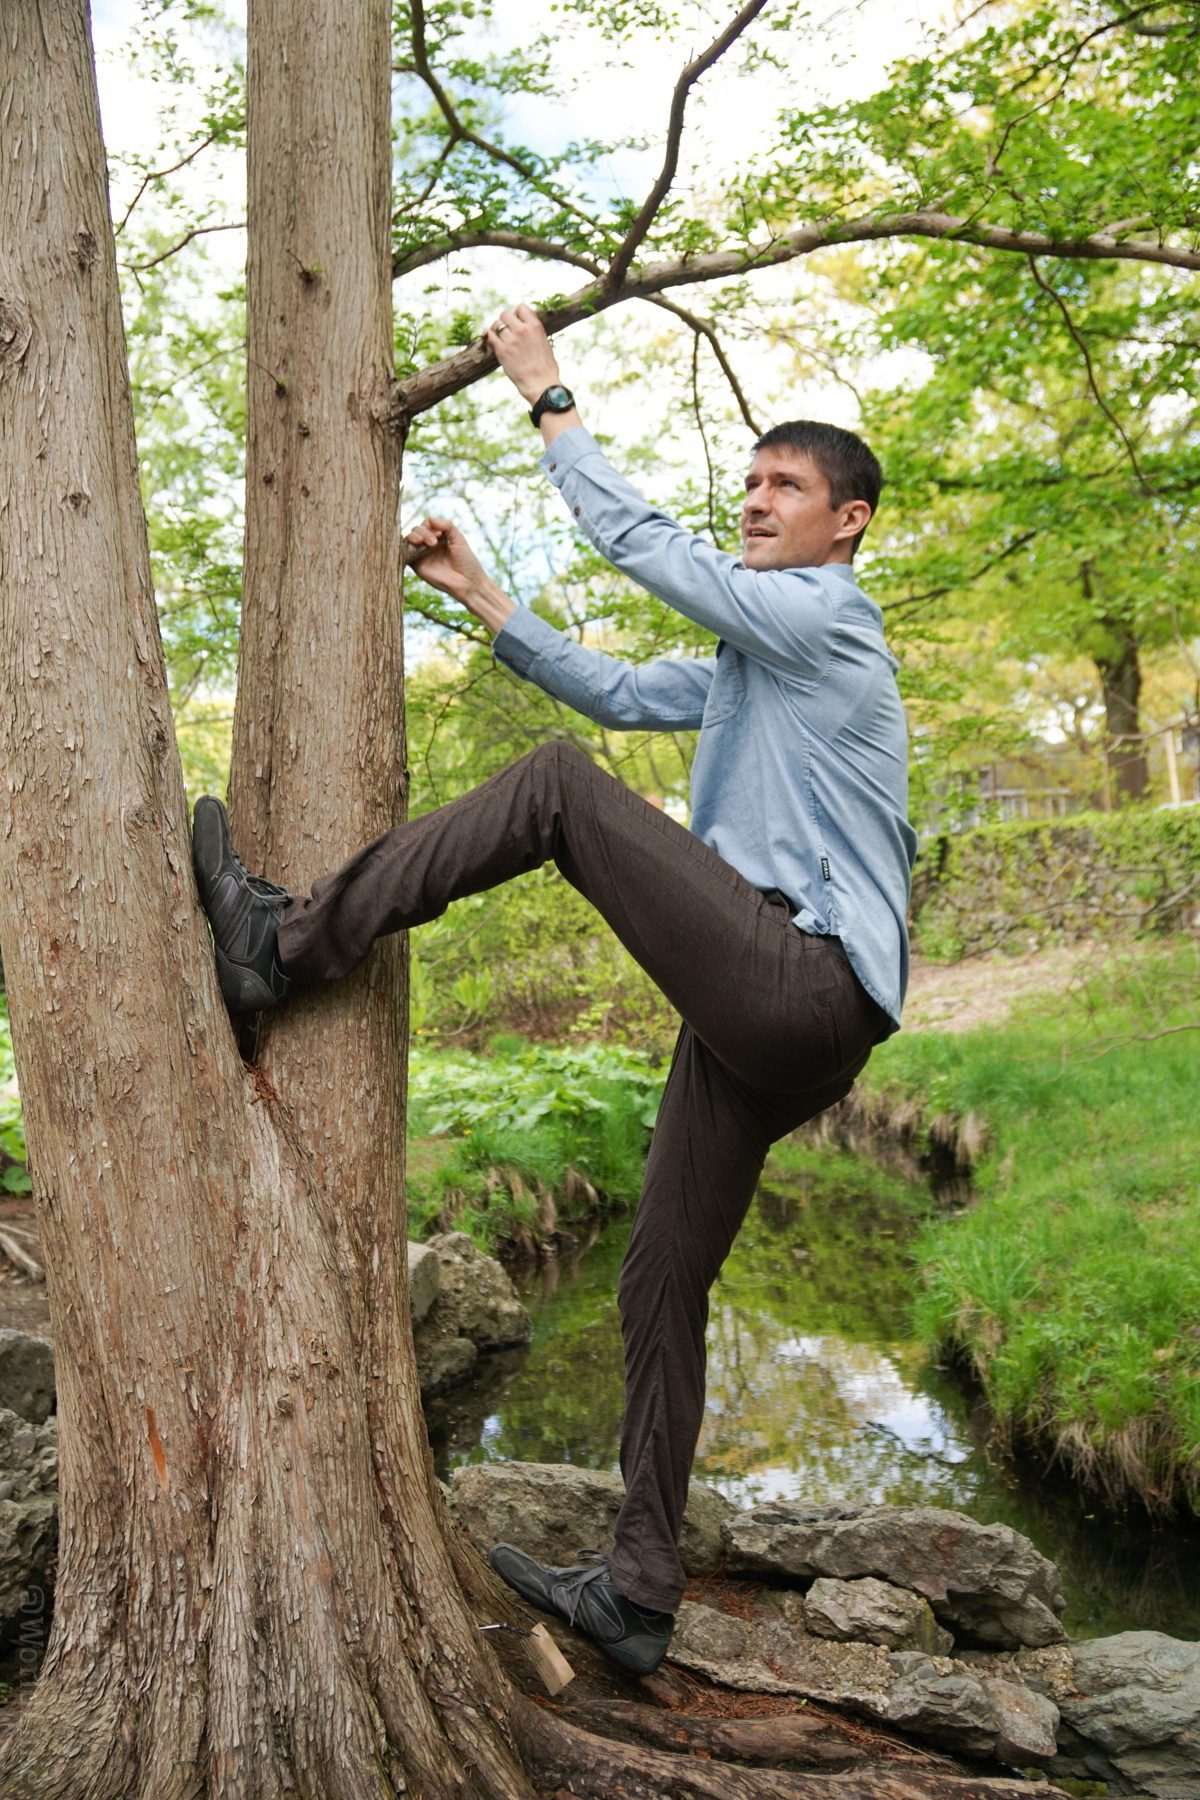 No problem climbing a tree in those pants!